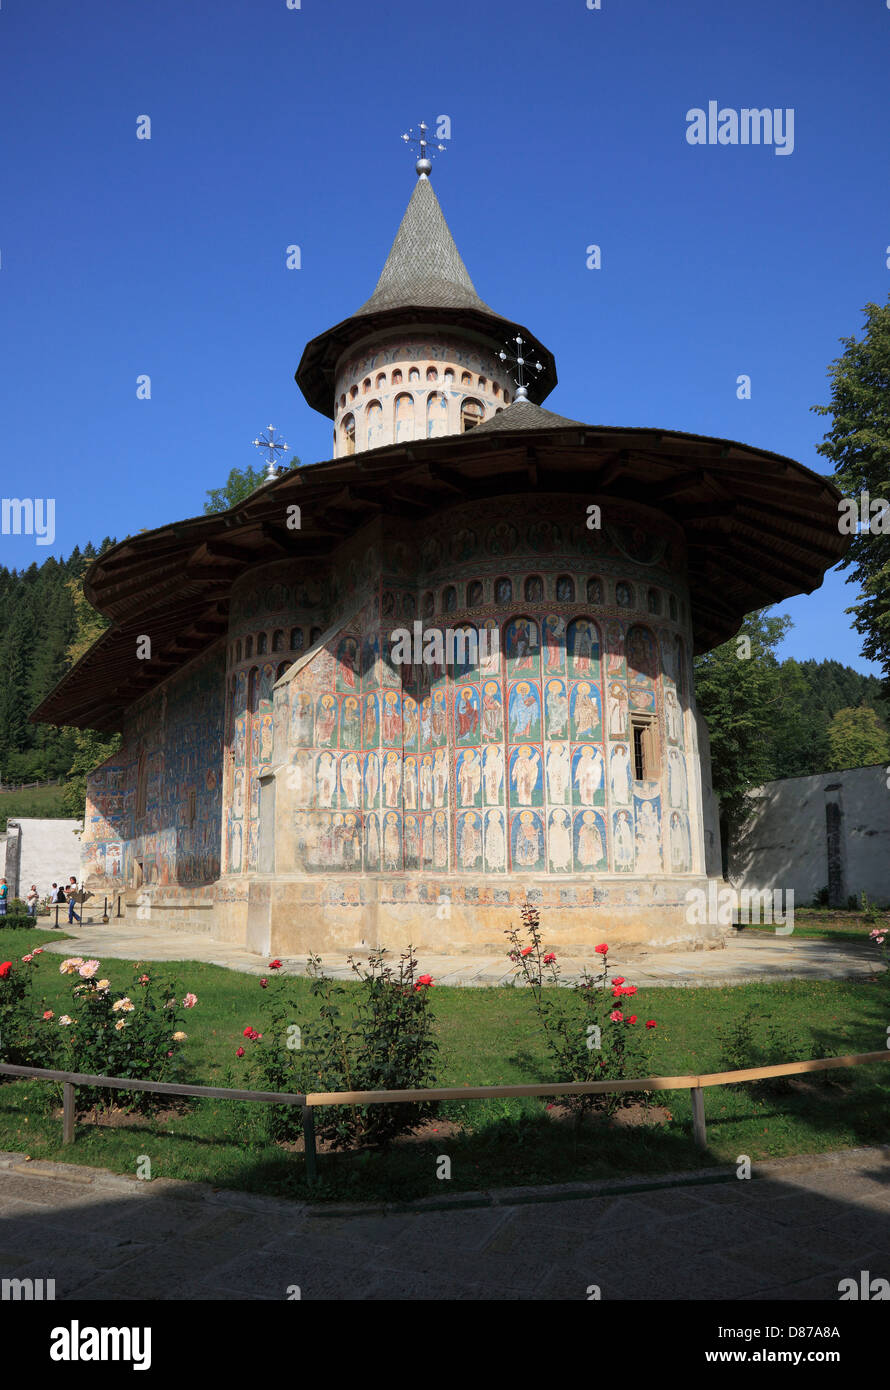 Voronet is a monastery in Romania, located in the town of Gura Humorului, Moldavia. It is one of the famous painted - Stock Image